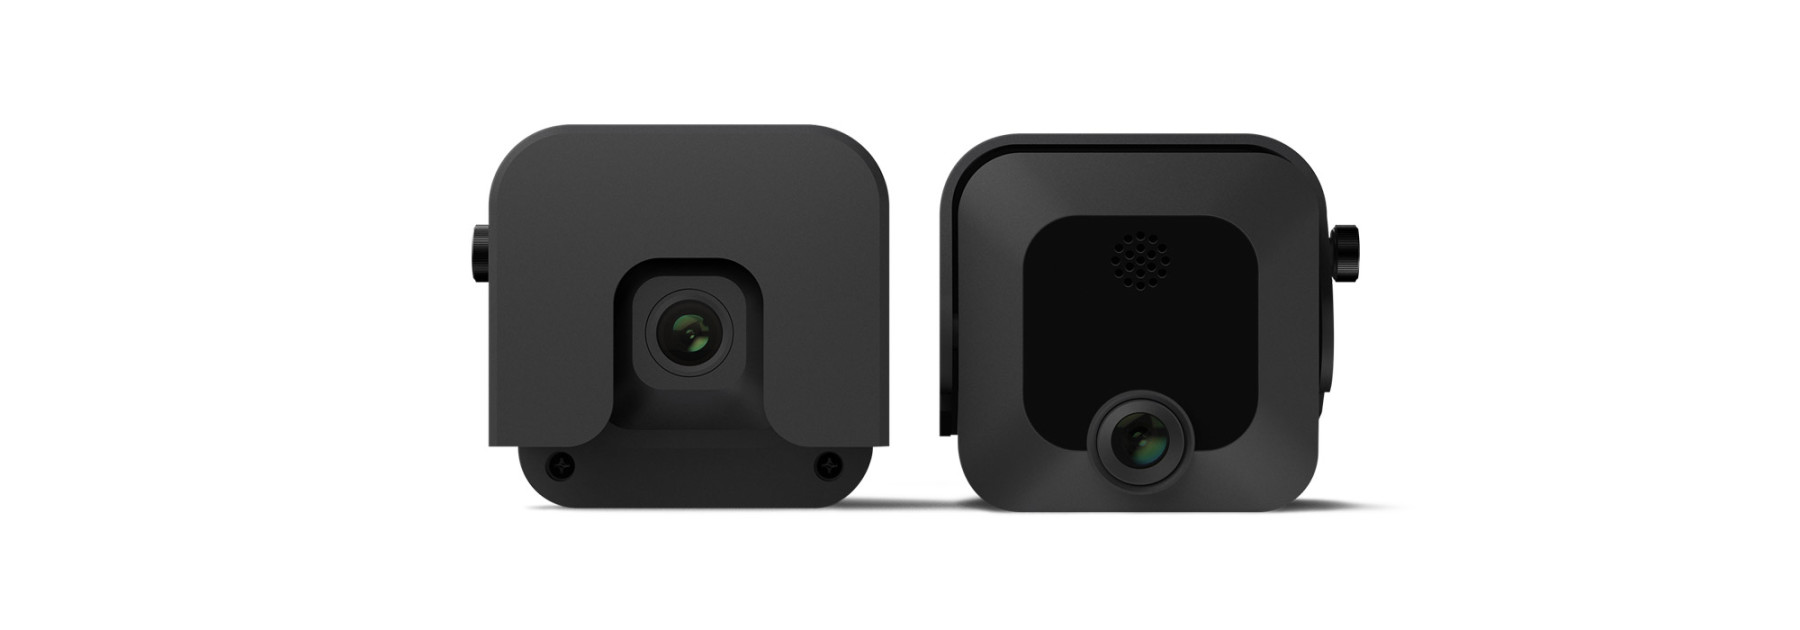 Announcing Next-Gen Dash Cams, Including Dual-Facing CM22